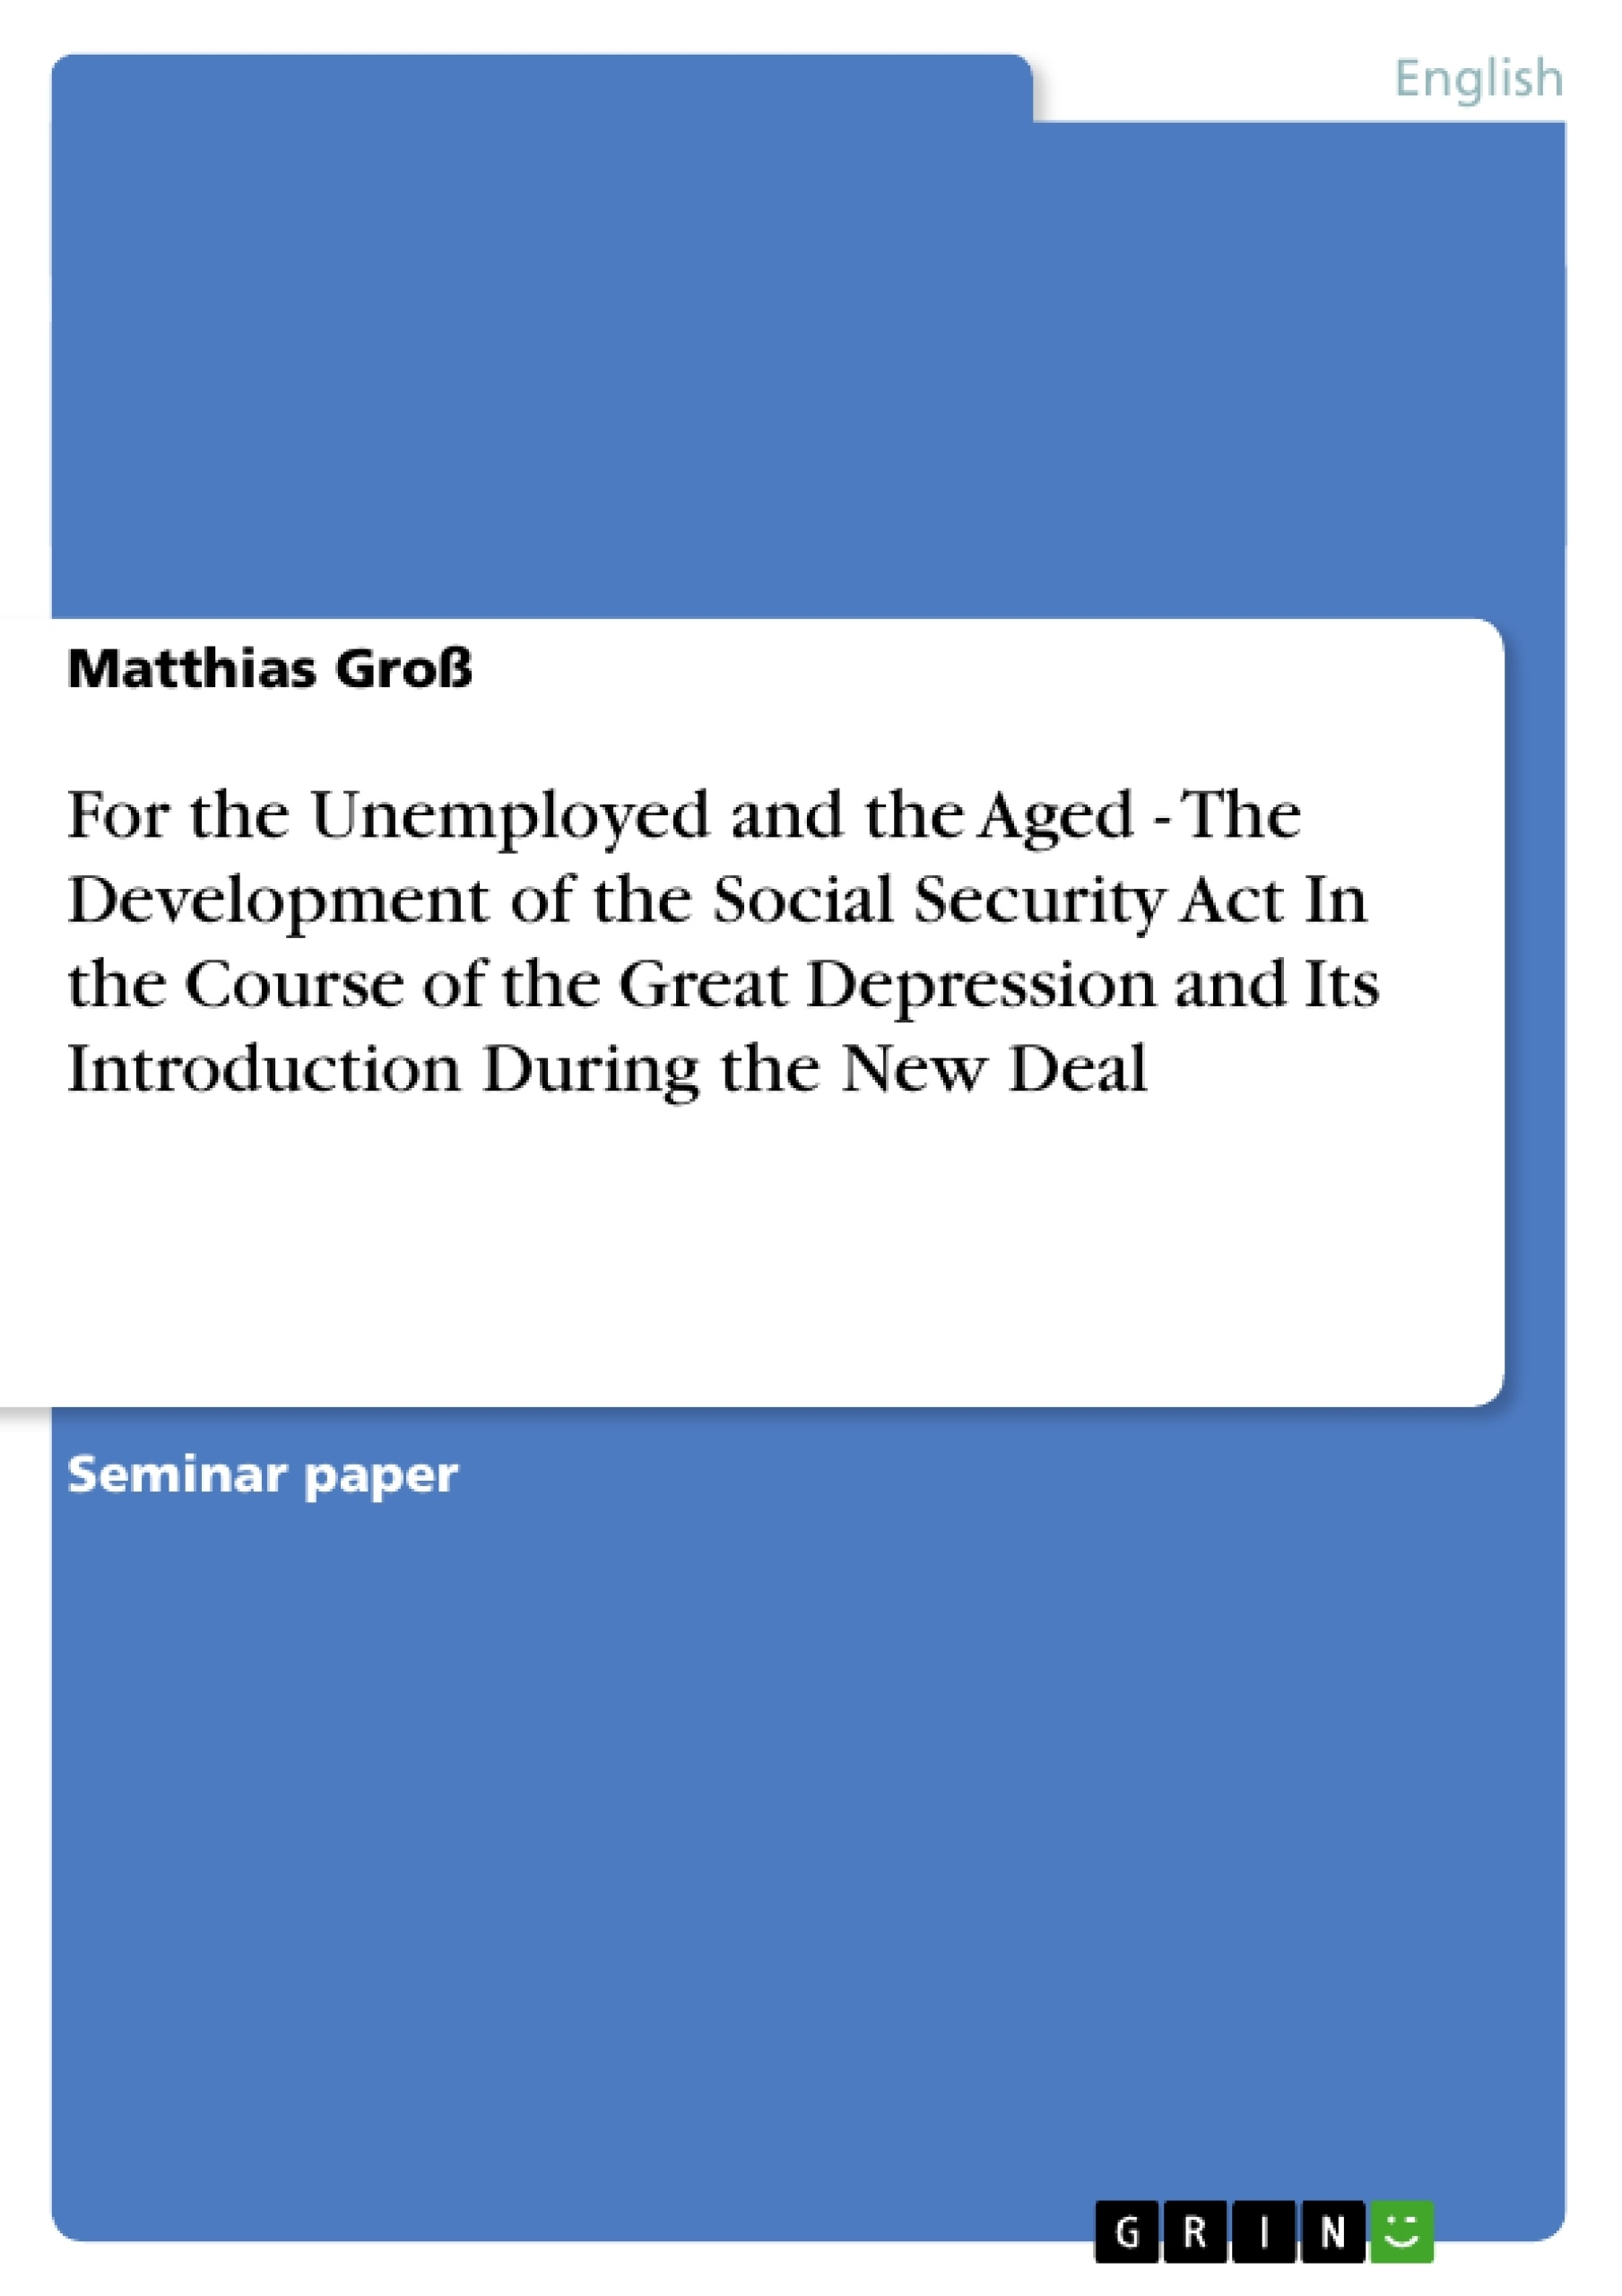 Title: For the Unemployed and the Aged - The Development of the Social Security Act In the Course of the Great Depression and Its Introduction During the New Deal